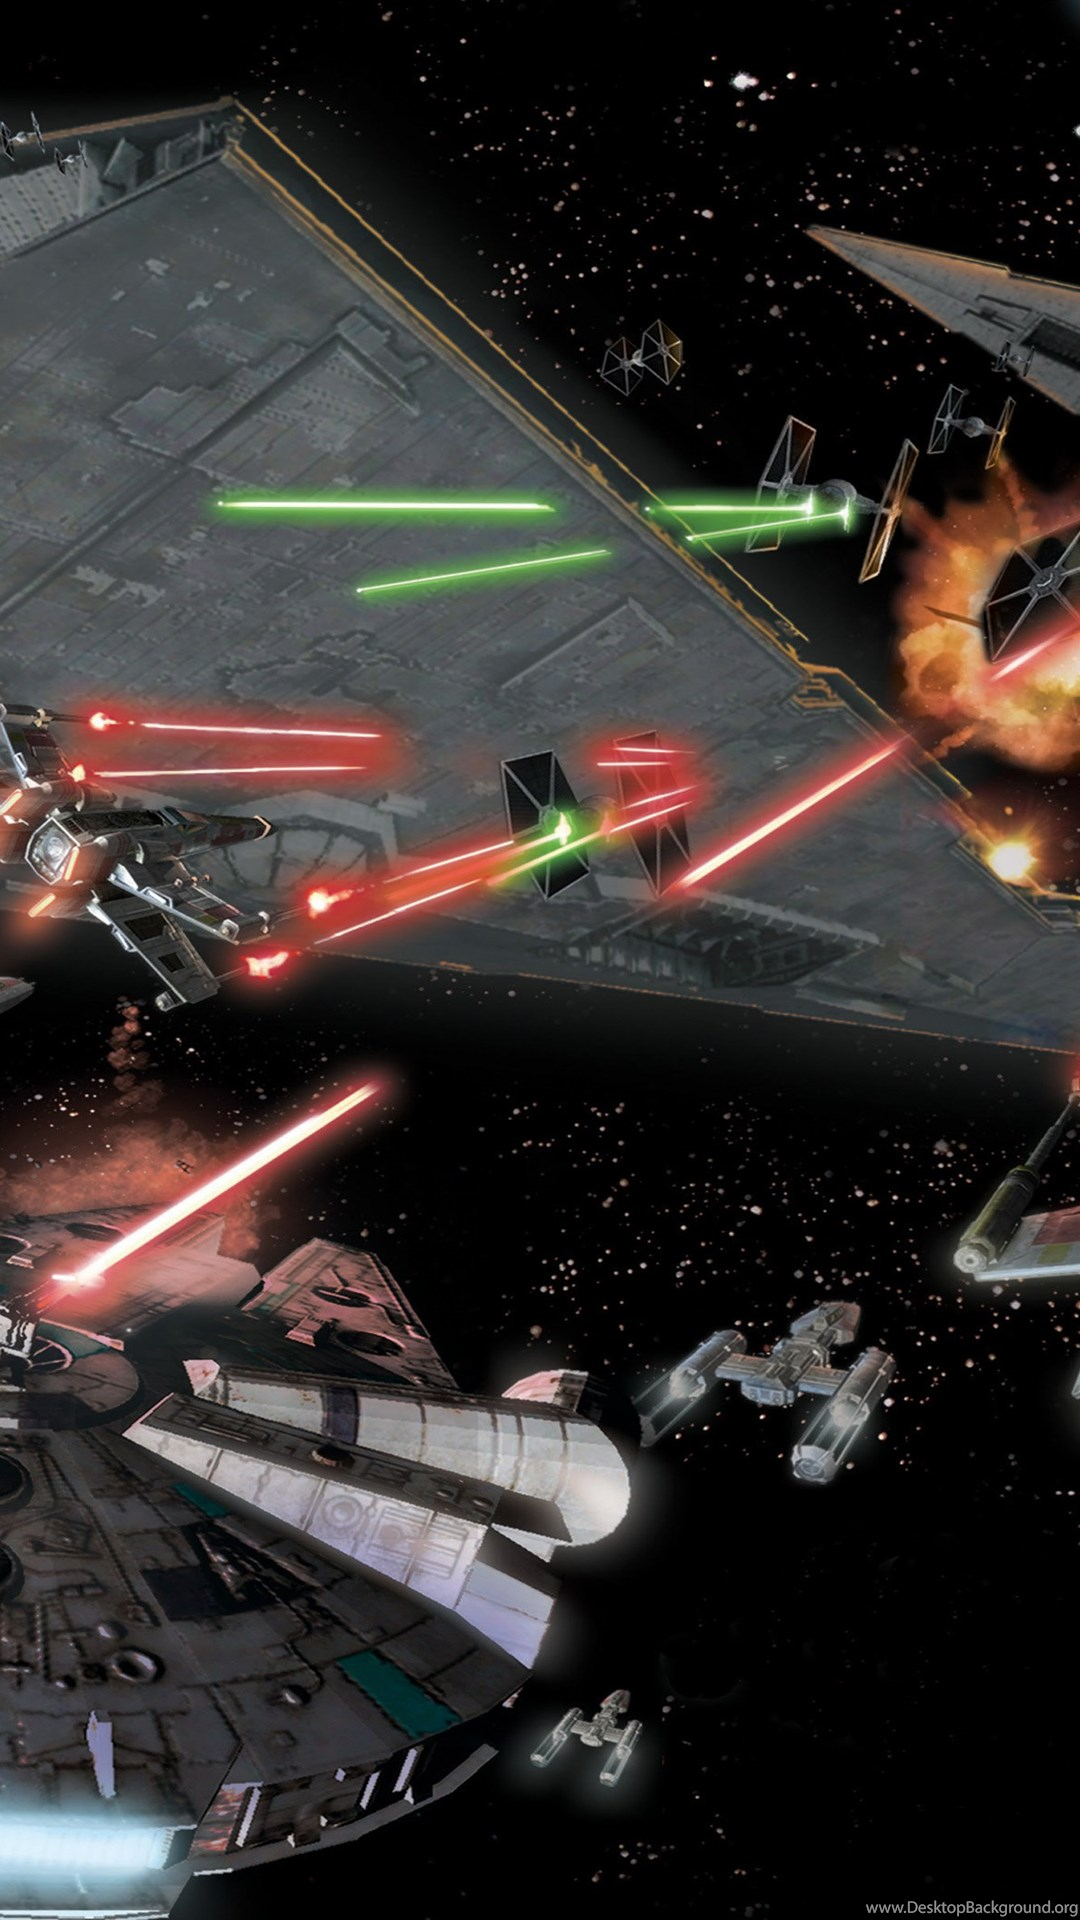 Star Wars Space Battle In Space Space Combat Aircraft Laser Shots Desktop Background